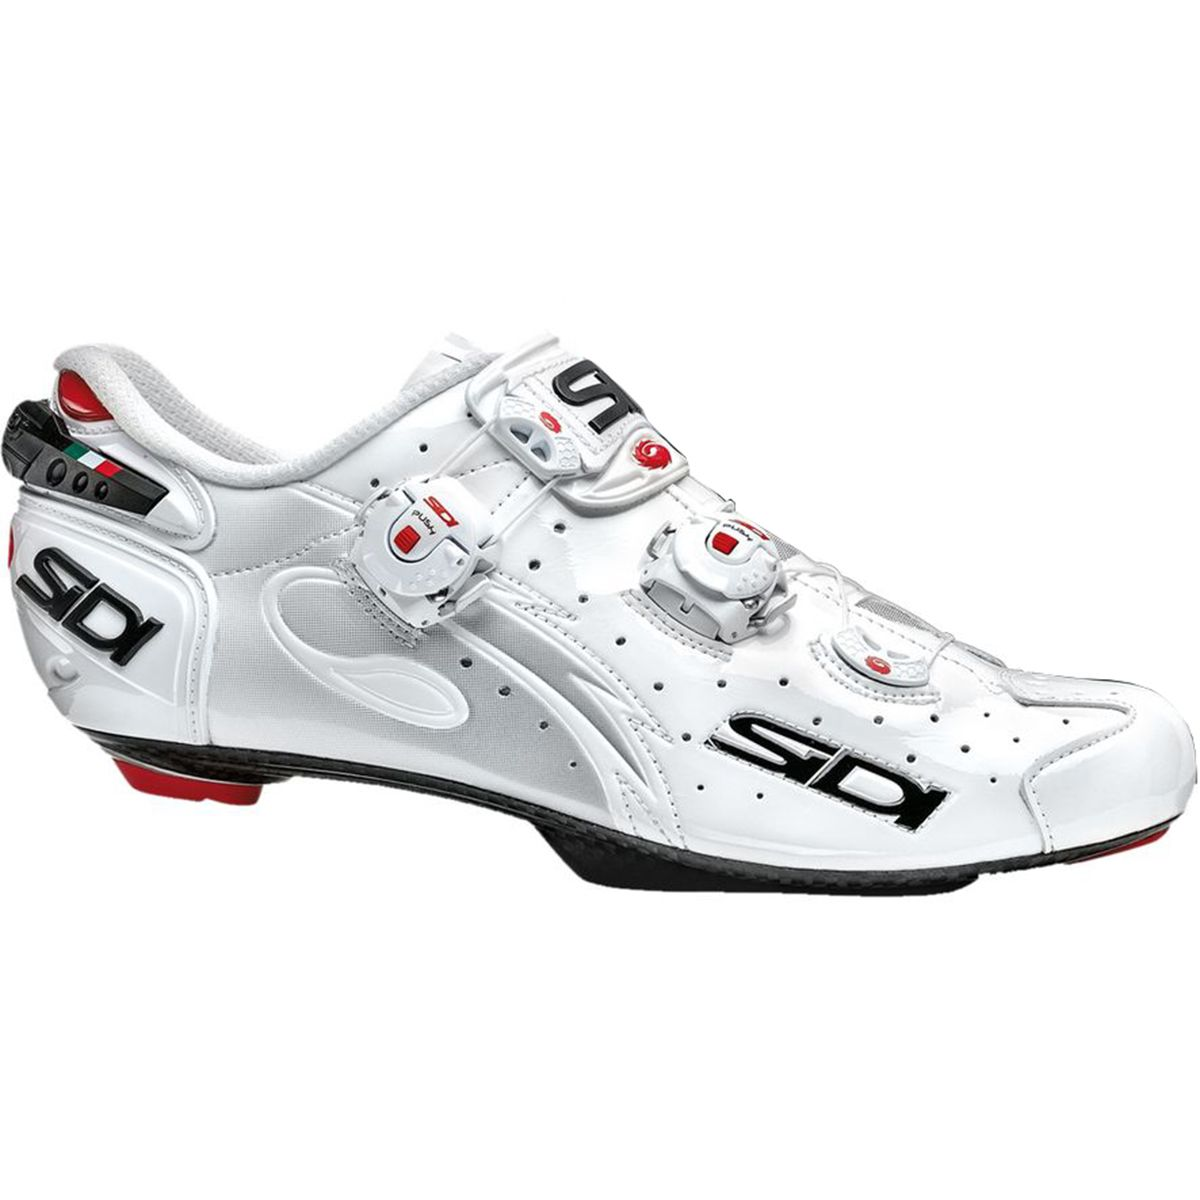 Sidi Speedplay Cycling Shoes | Sidi Wire Carbon Vernice | Sidi Wire Road Shoes